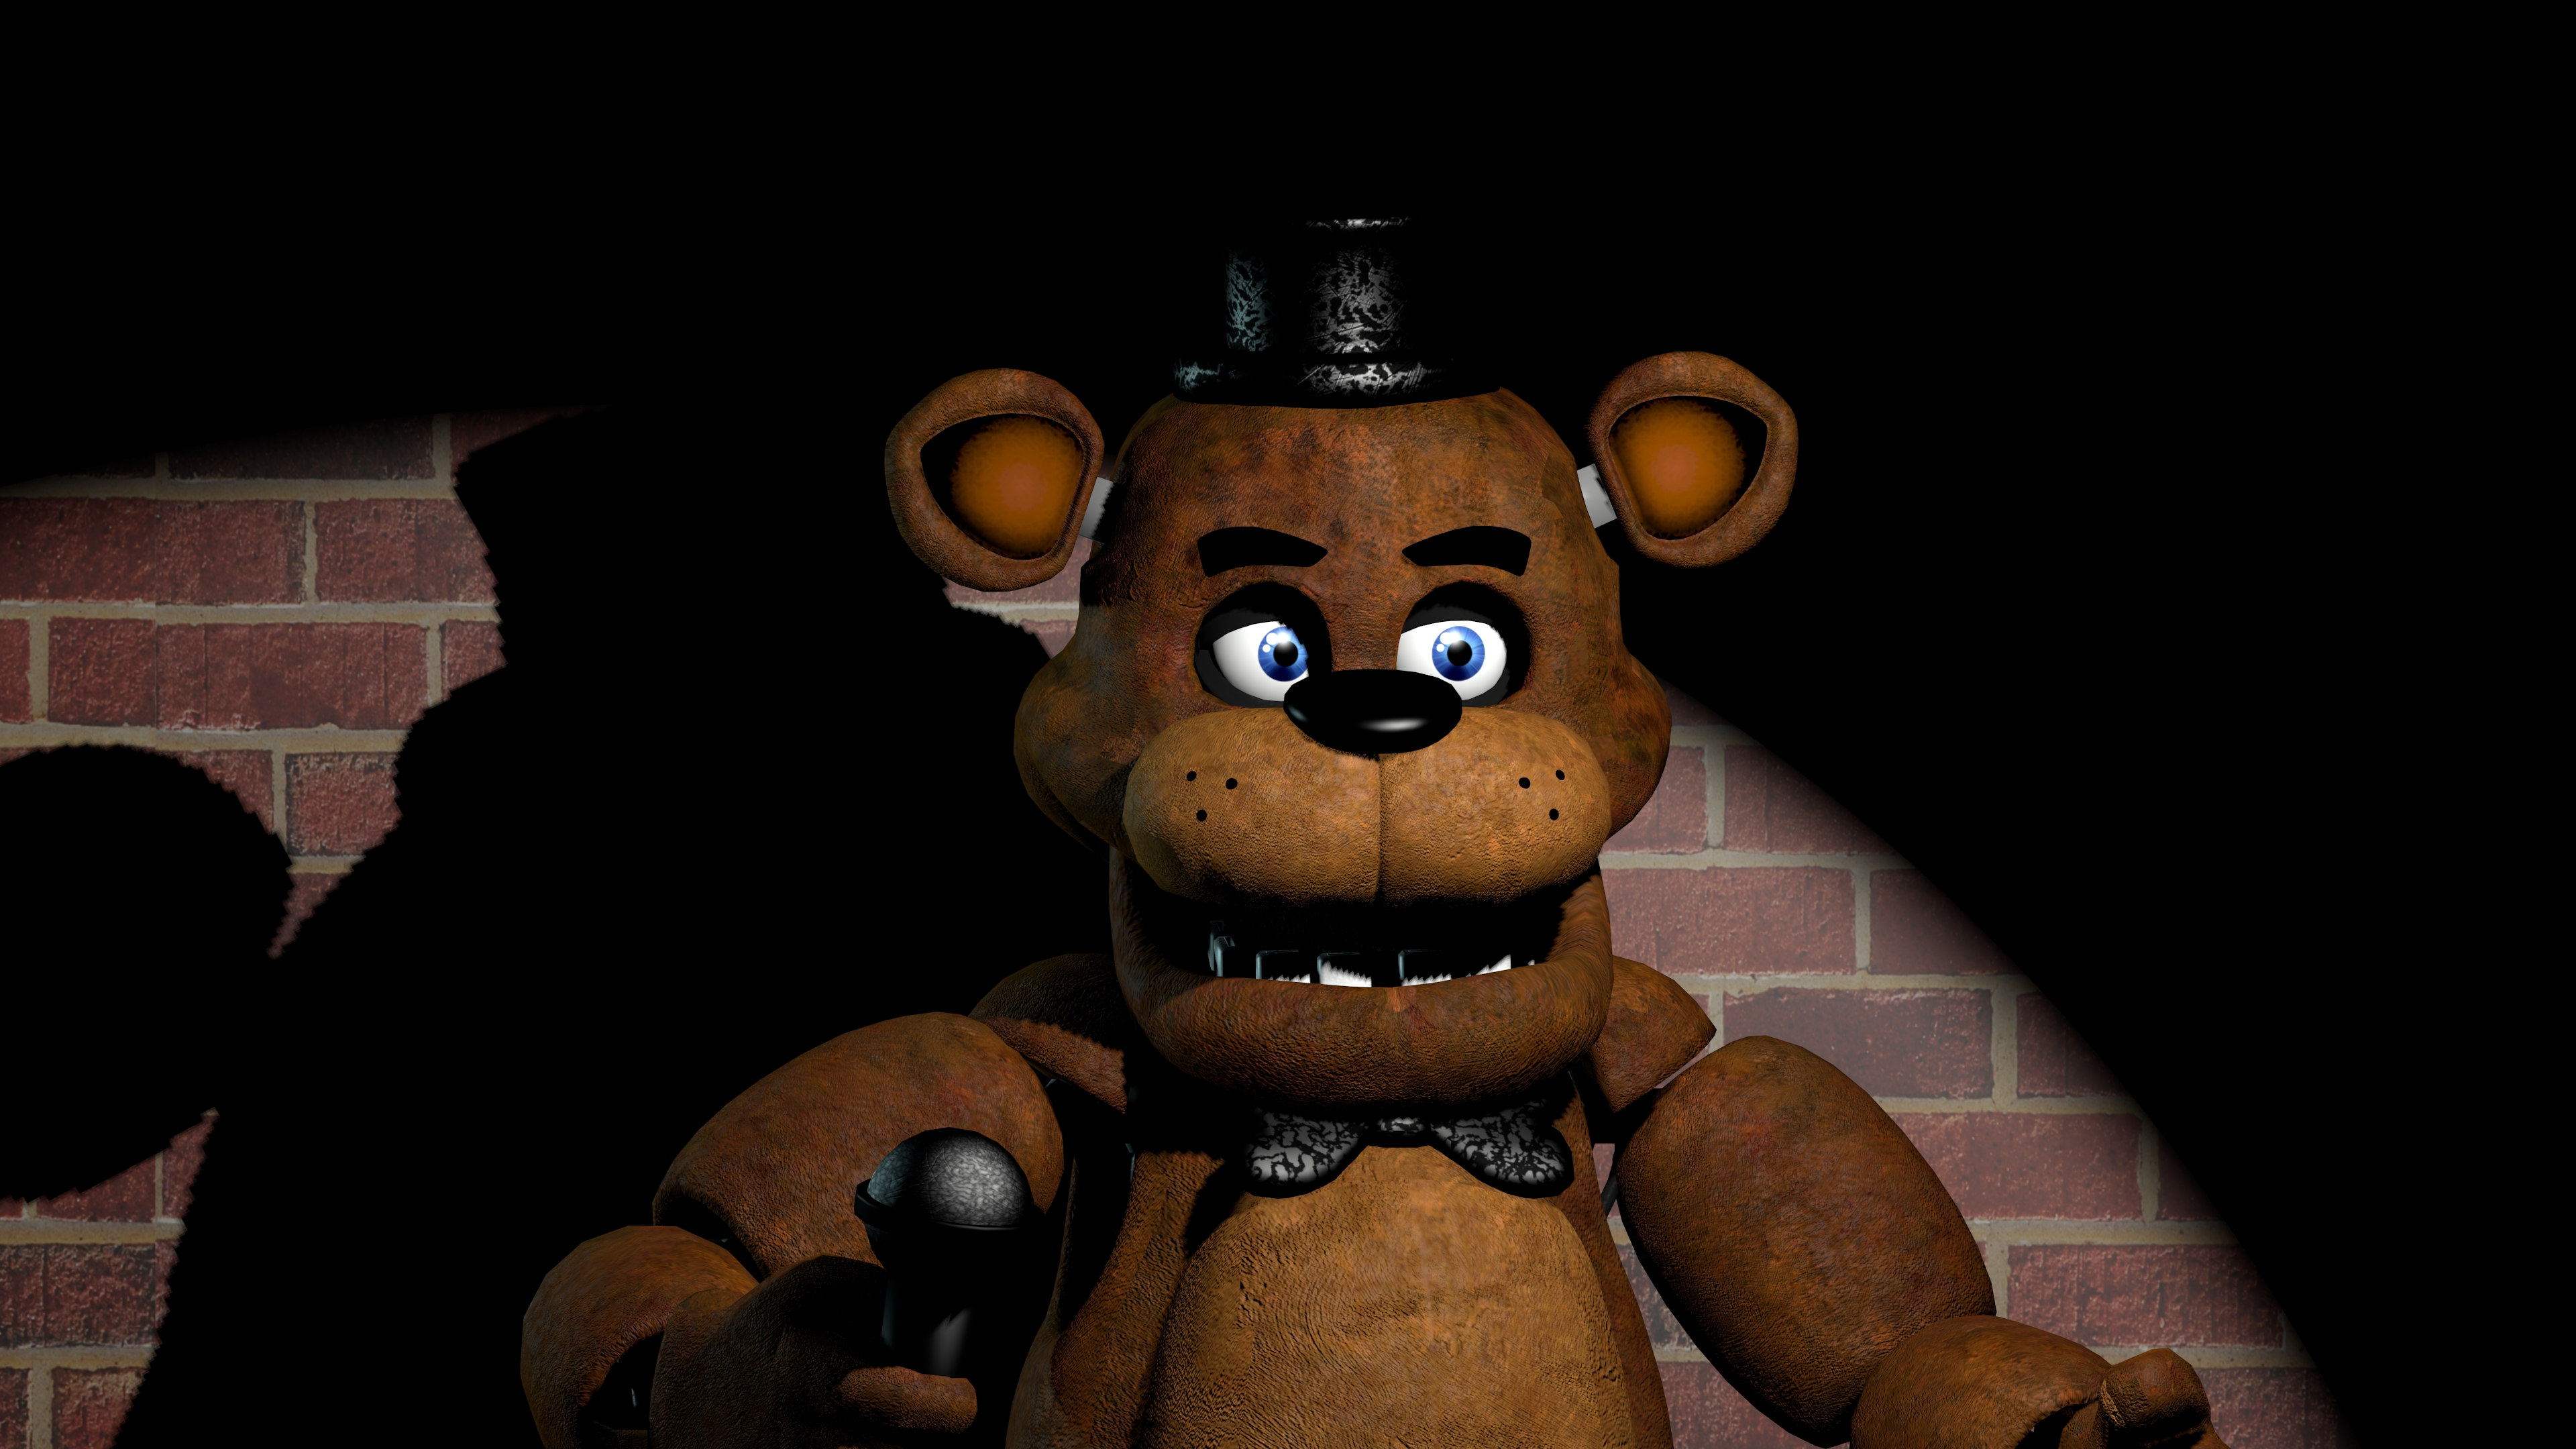 Five Nights At Freddy S Wallpaper 4k Ultra Hd Id 4072